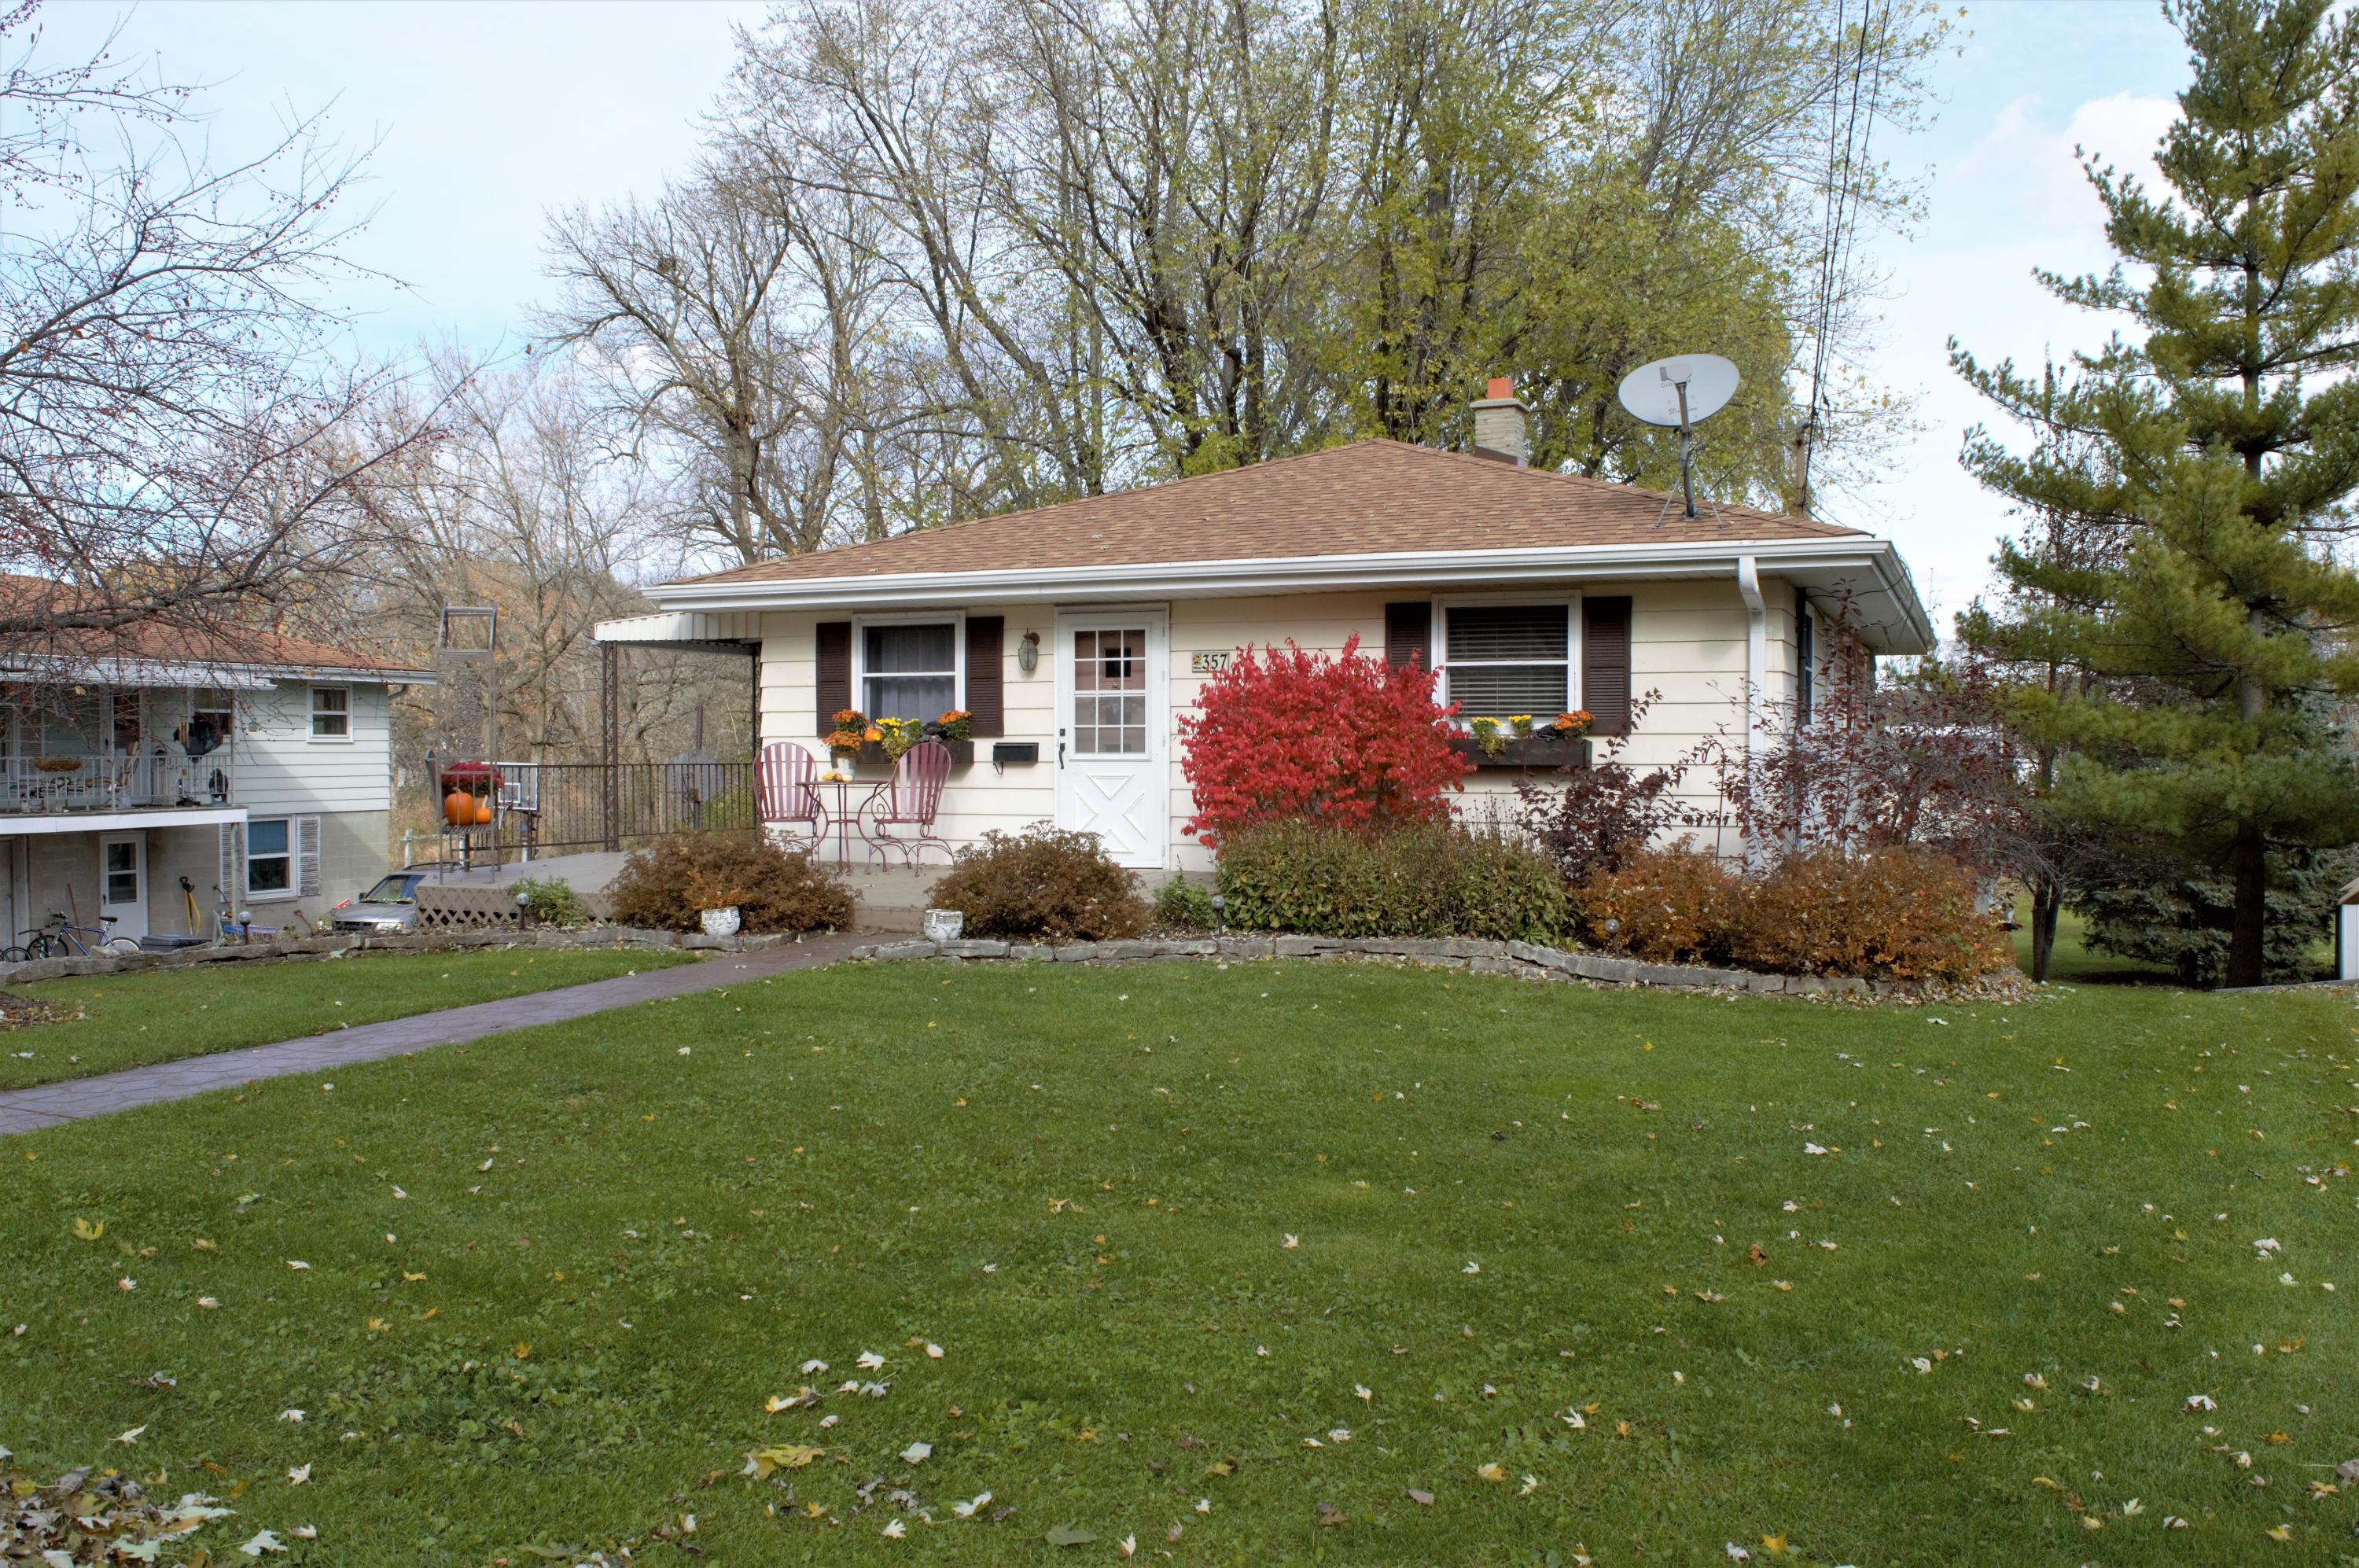 357 E Wisconsin Ave, Pewaukee, Wisconsin 53072, 3 Bedrooms Bedrooms, ,1 BathroomBathrooms,Single-Family,For Sale,E Wisconsin Ave,1613045